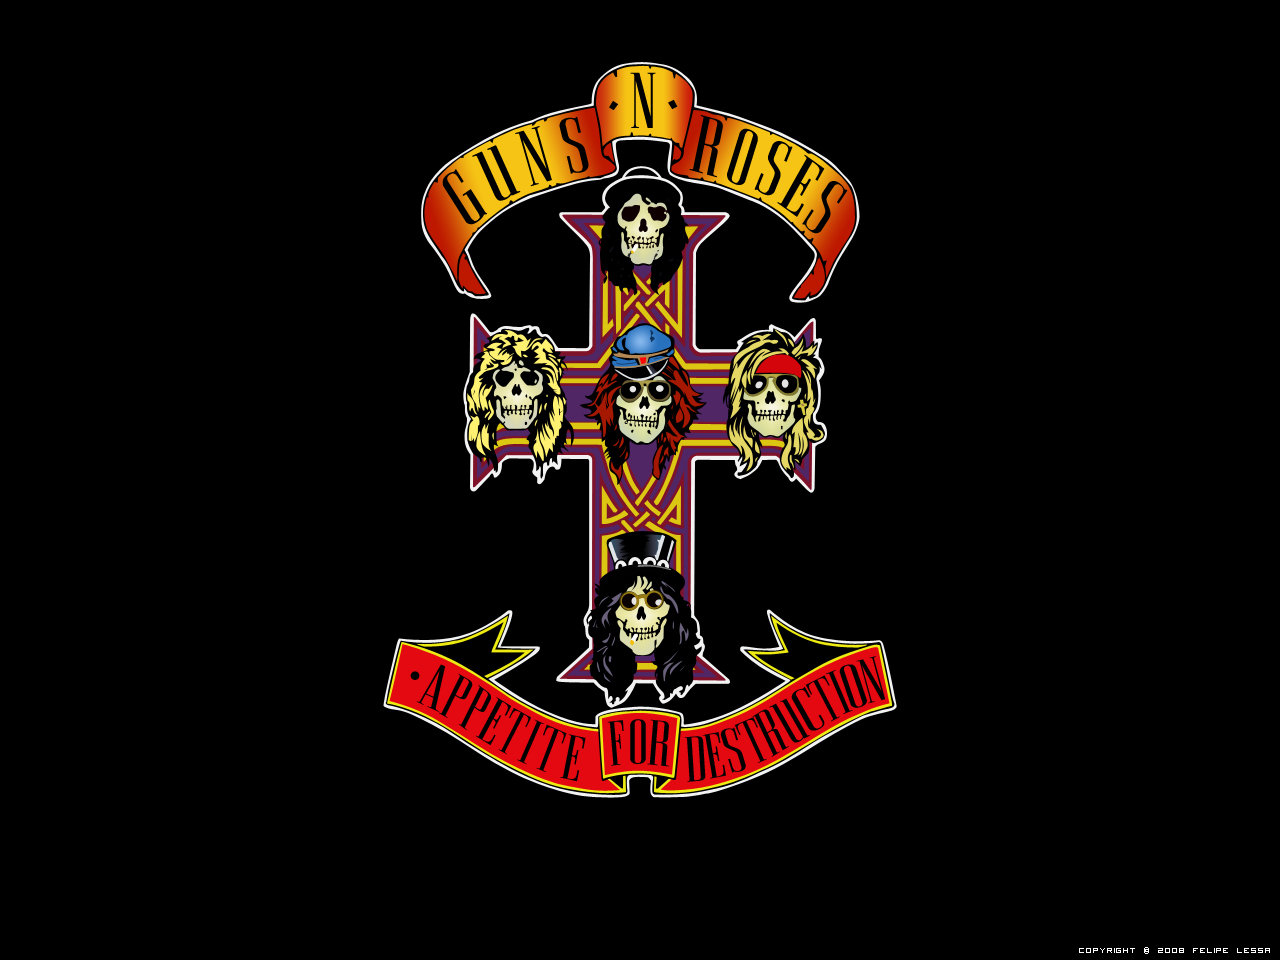 Guns n roses wallpaper wallpapersafari - Wallpaper guns and roses ...